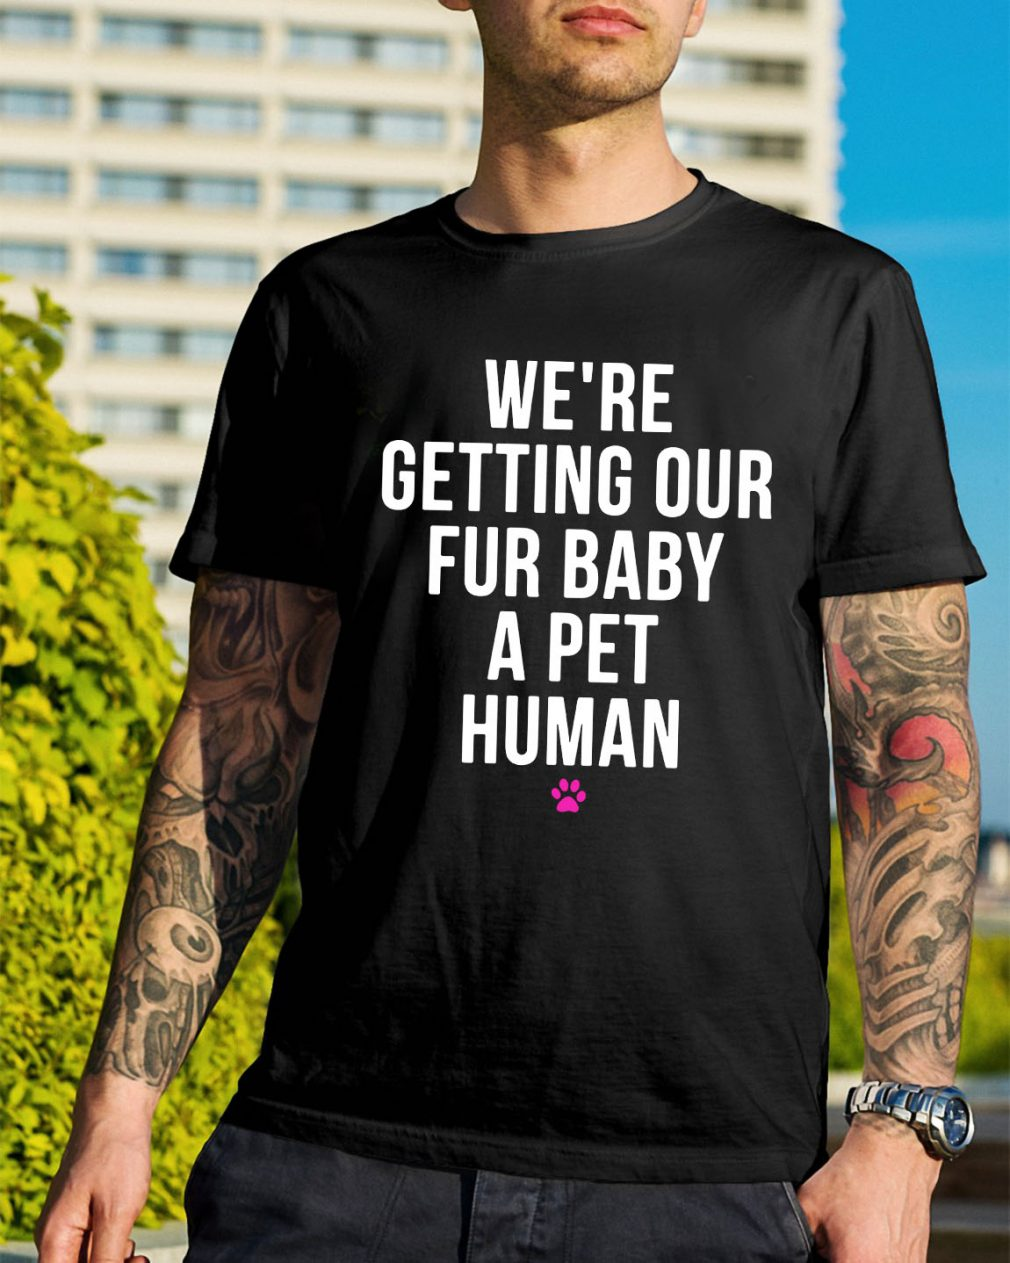 We're getting our fur baby a pet human shirt